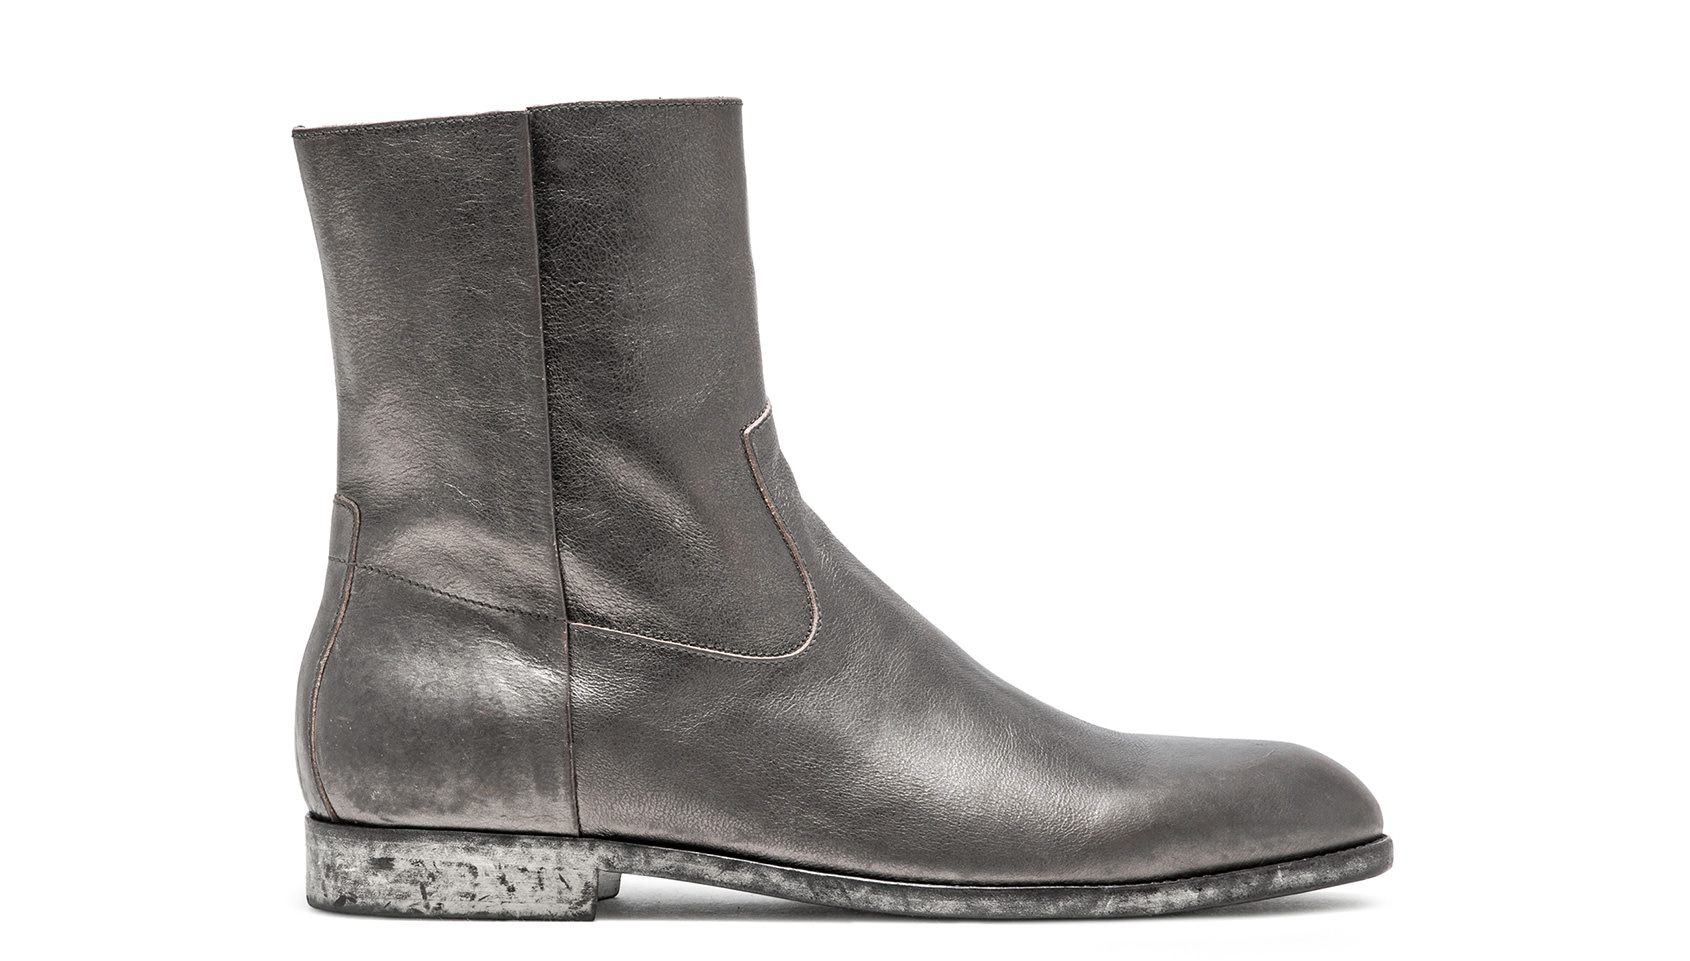 BUTTERO: FLOYD ANKLE BOOTS IN GRAPHITE LEATHER